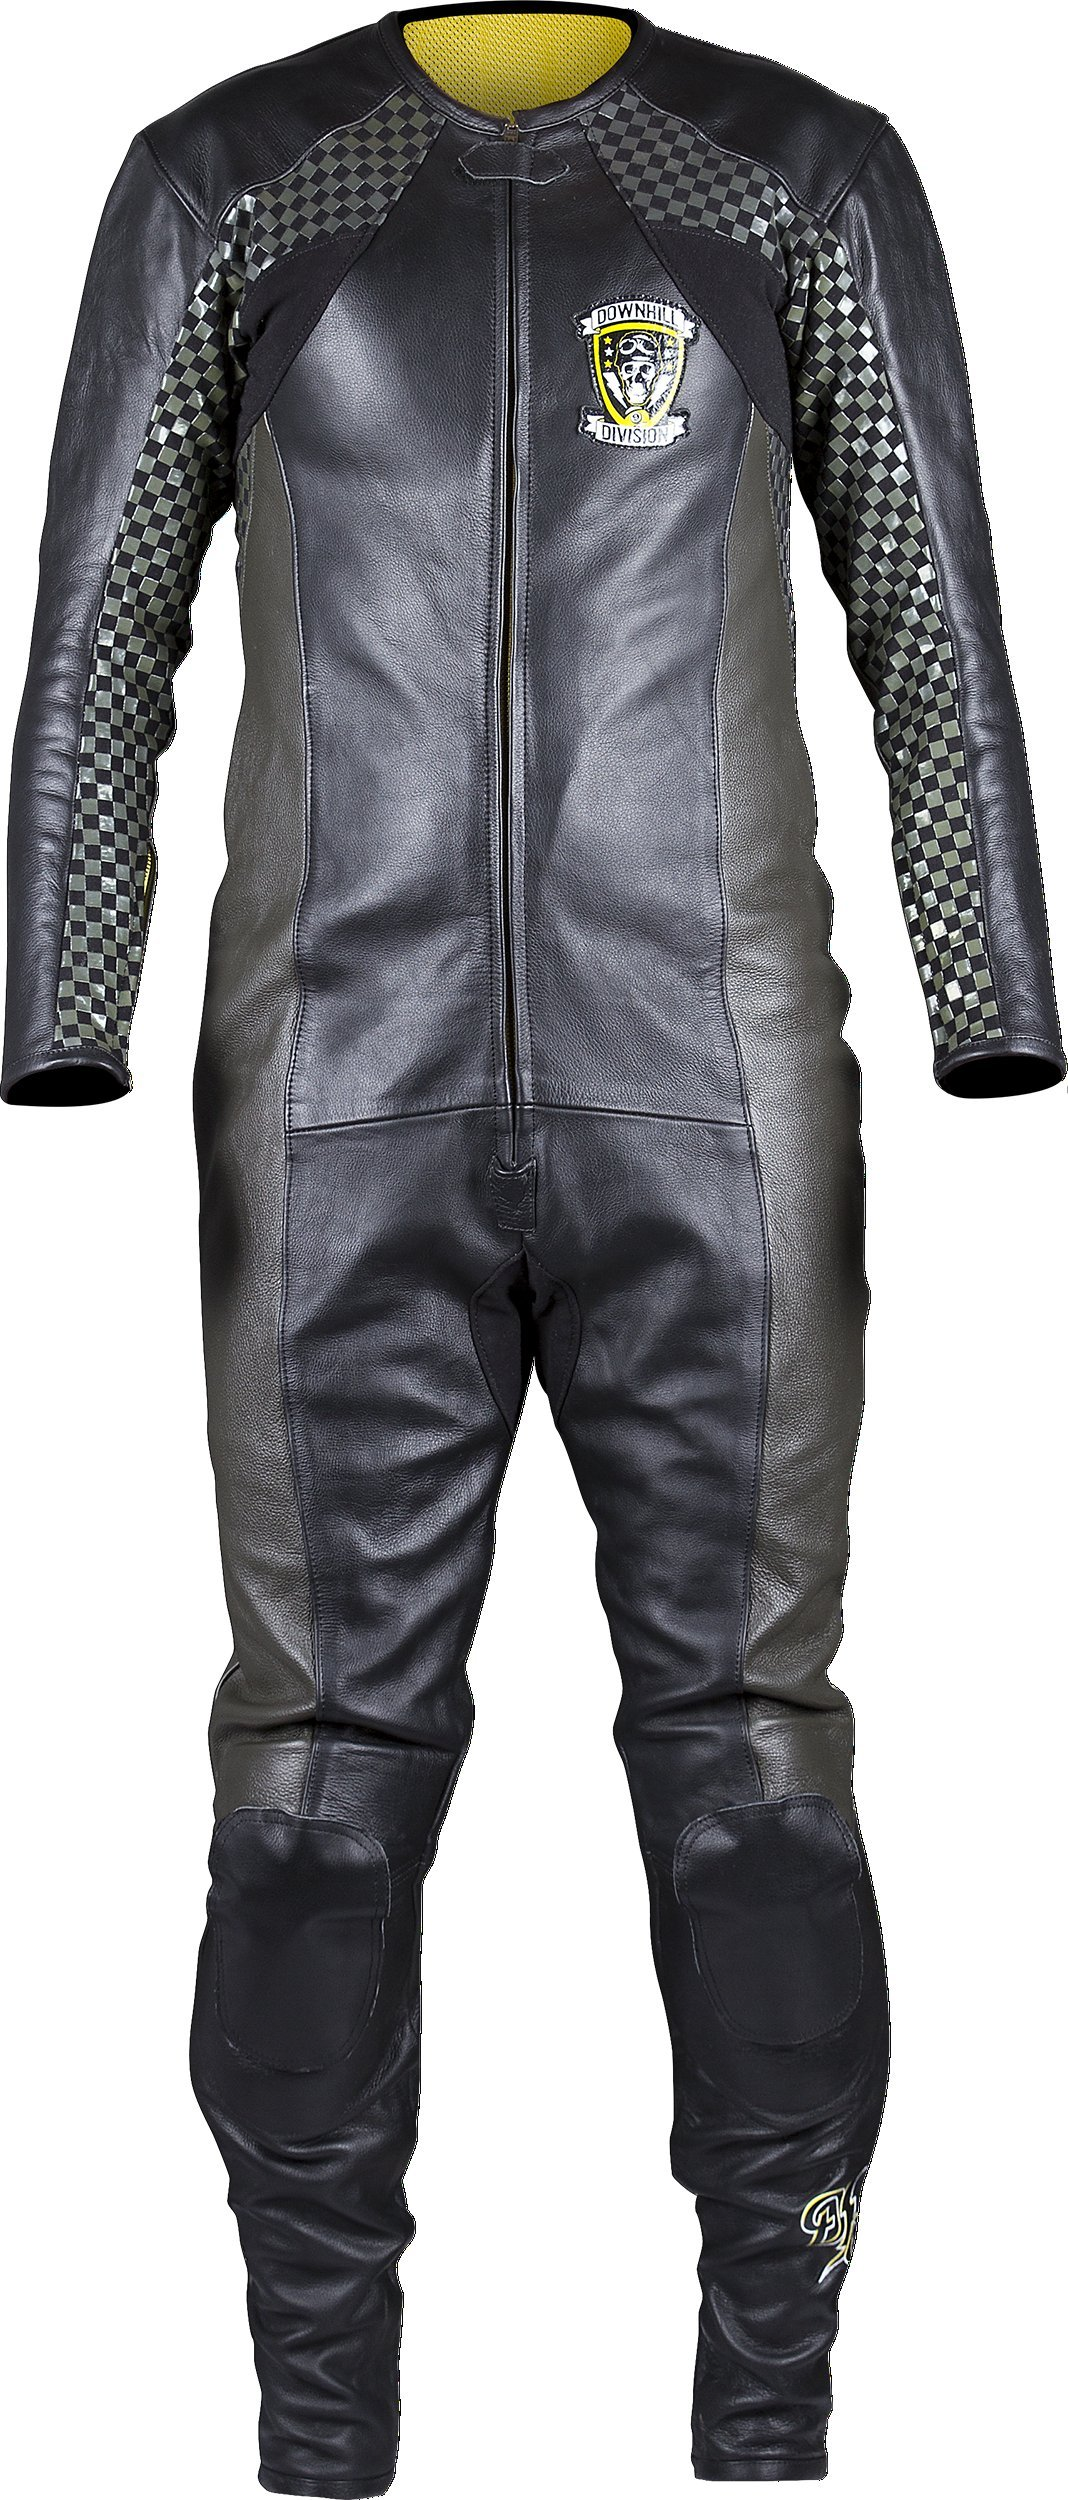 Sector 9 Bomber Suit DHD Race Suit, Black, Small by Sector 9